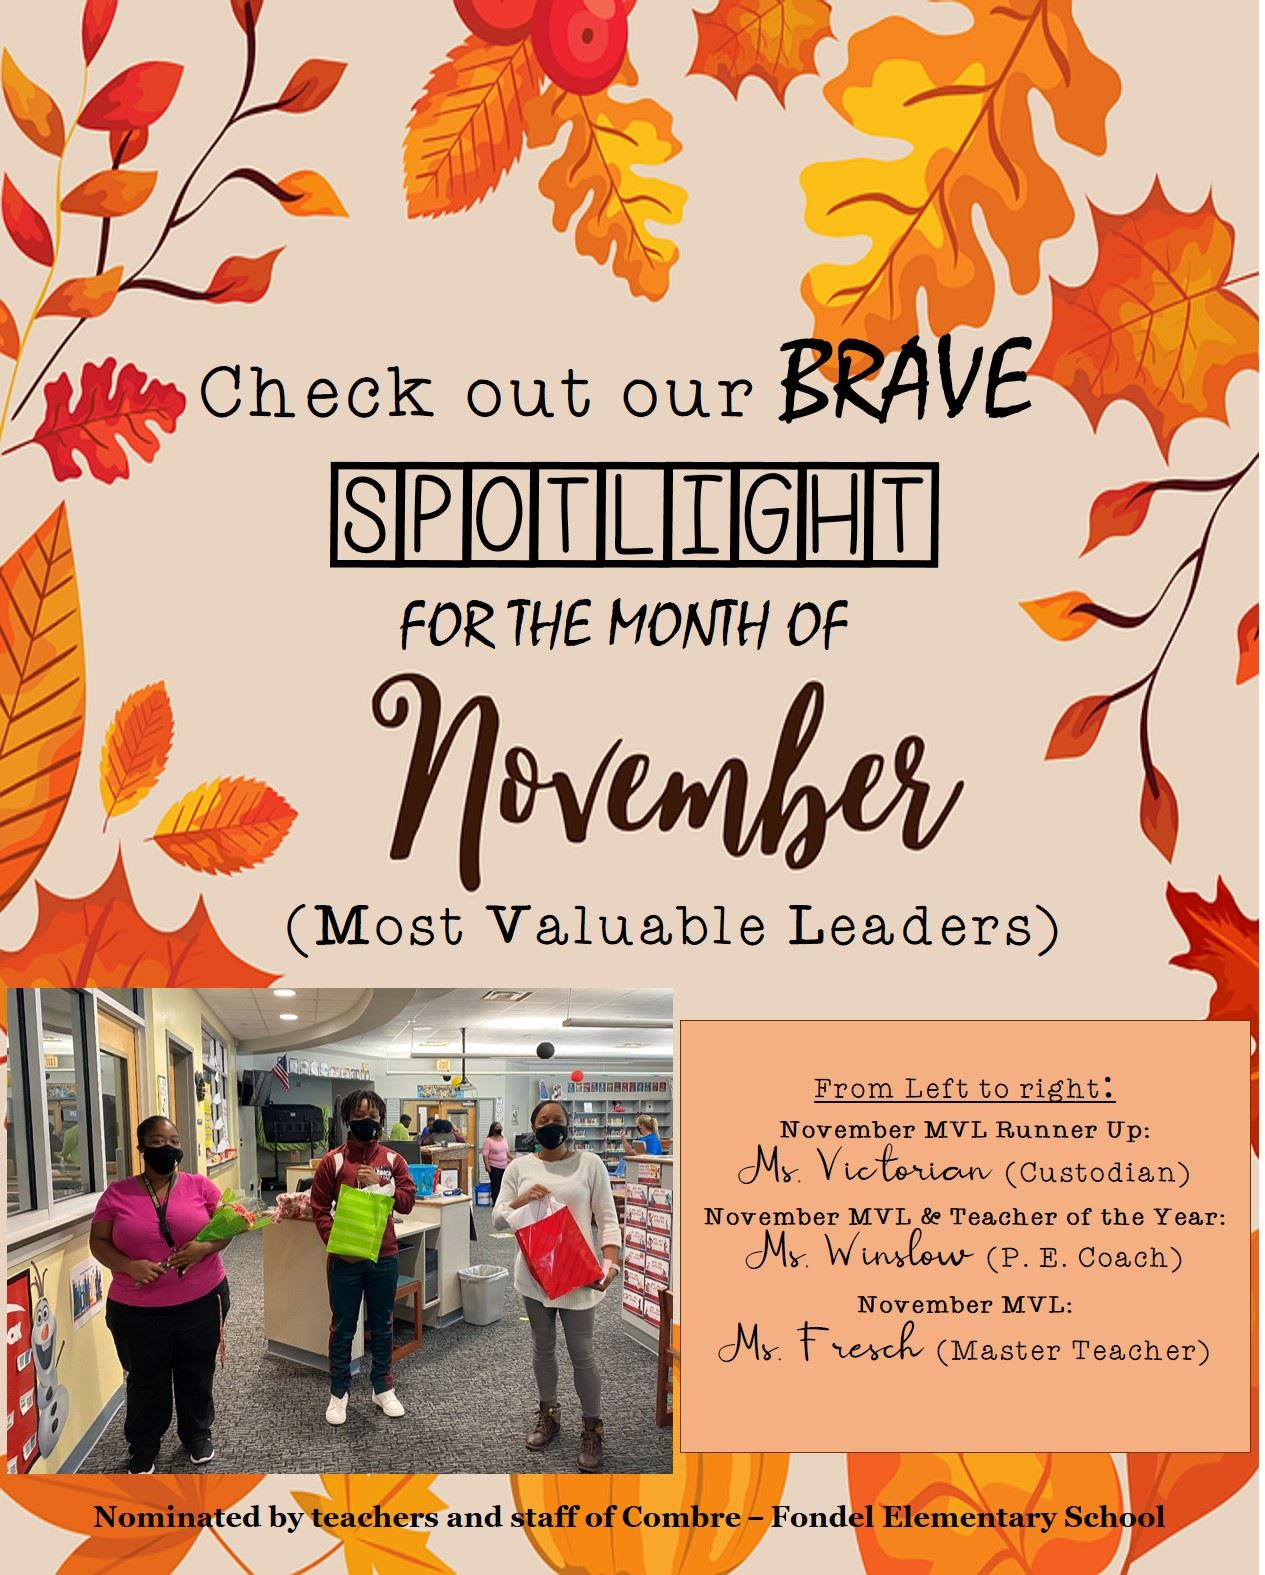 CONGRATULATIONS! November Most Valuable Leaders